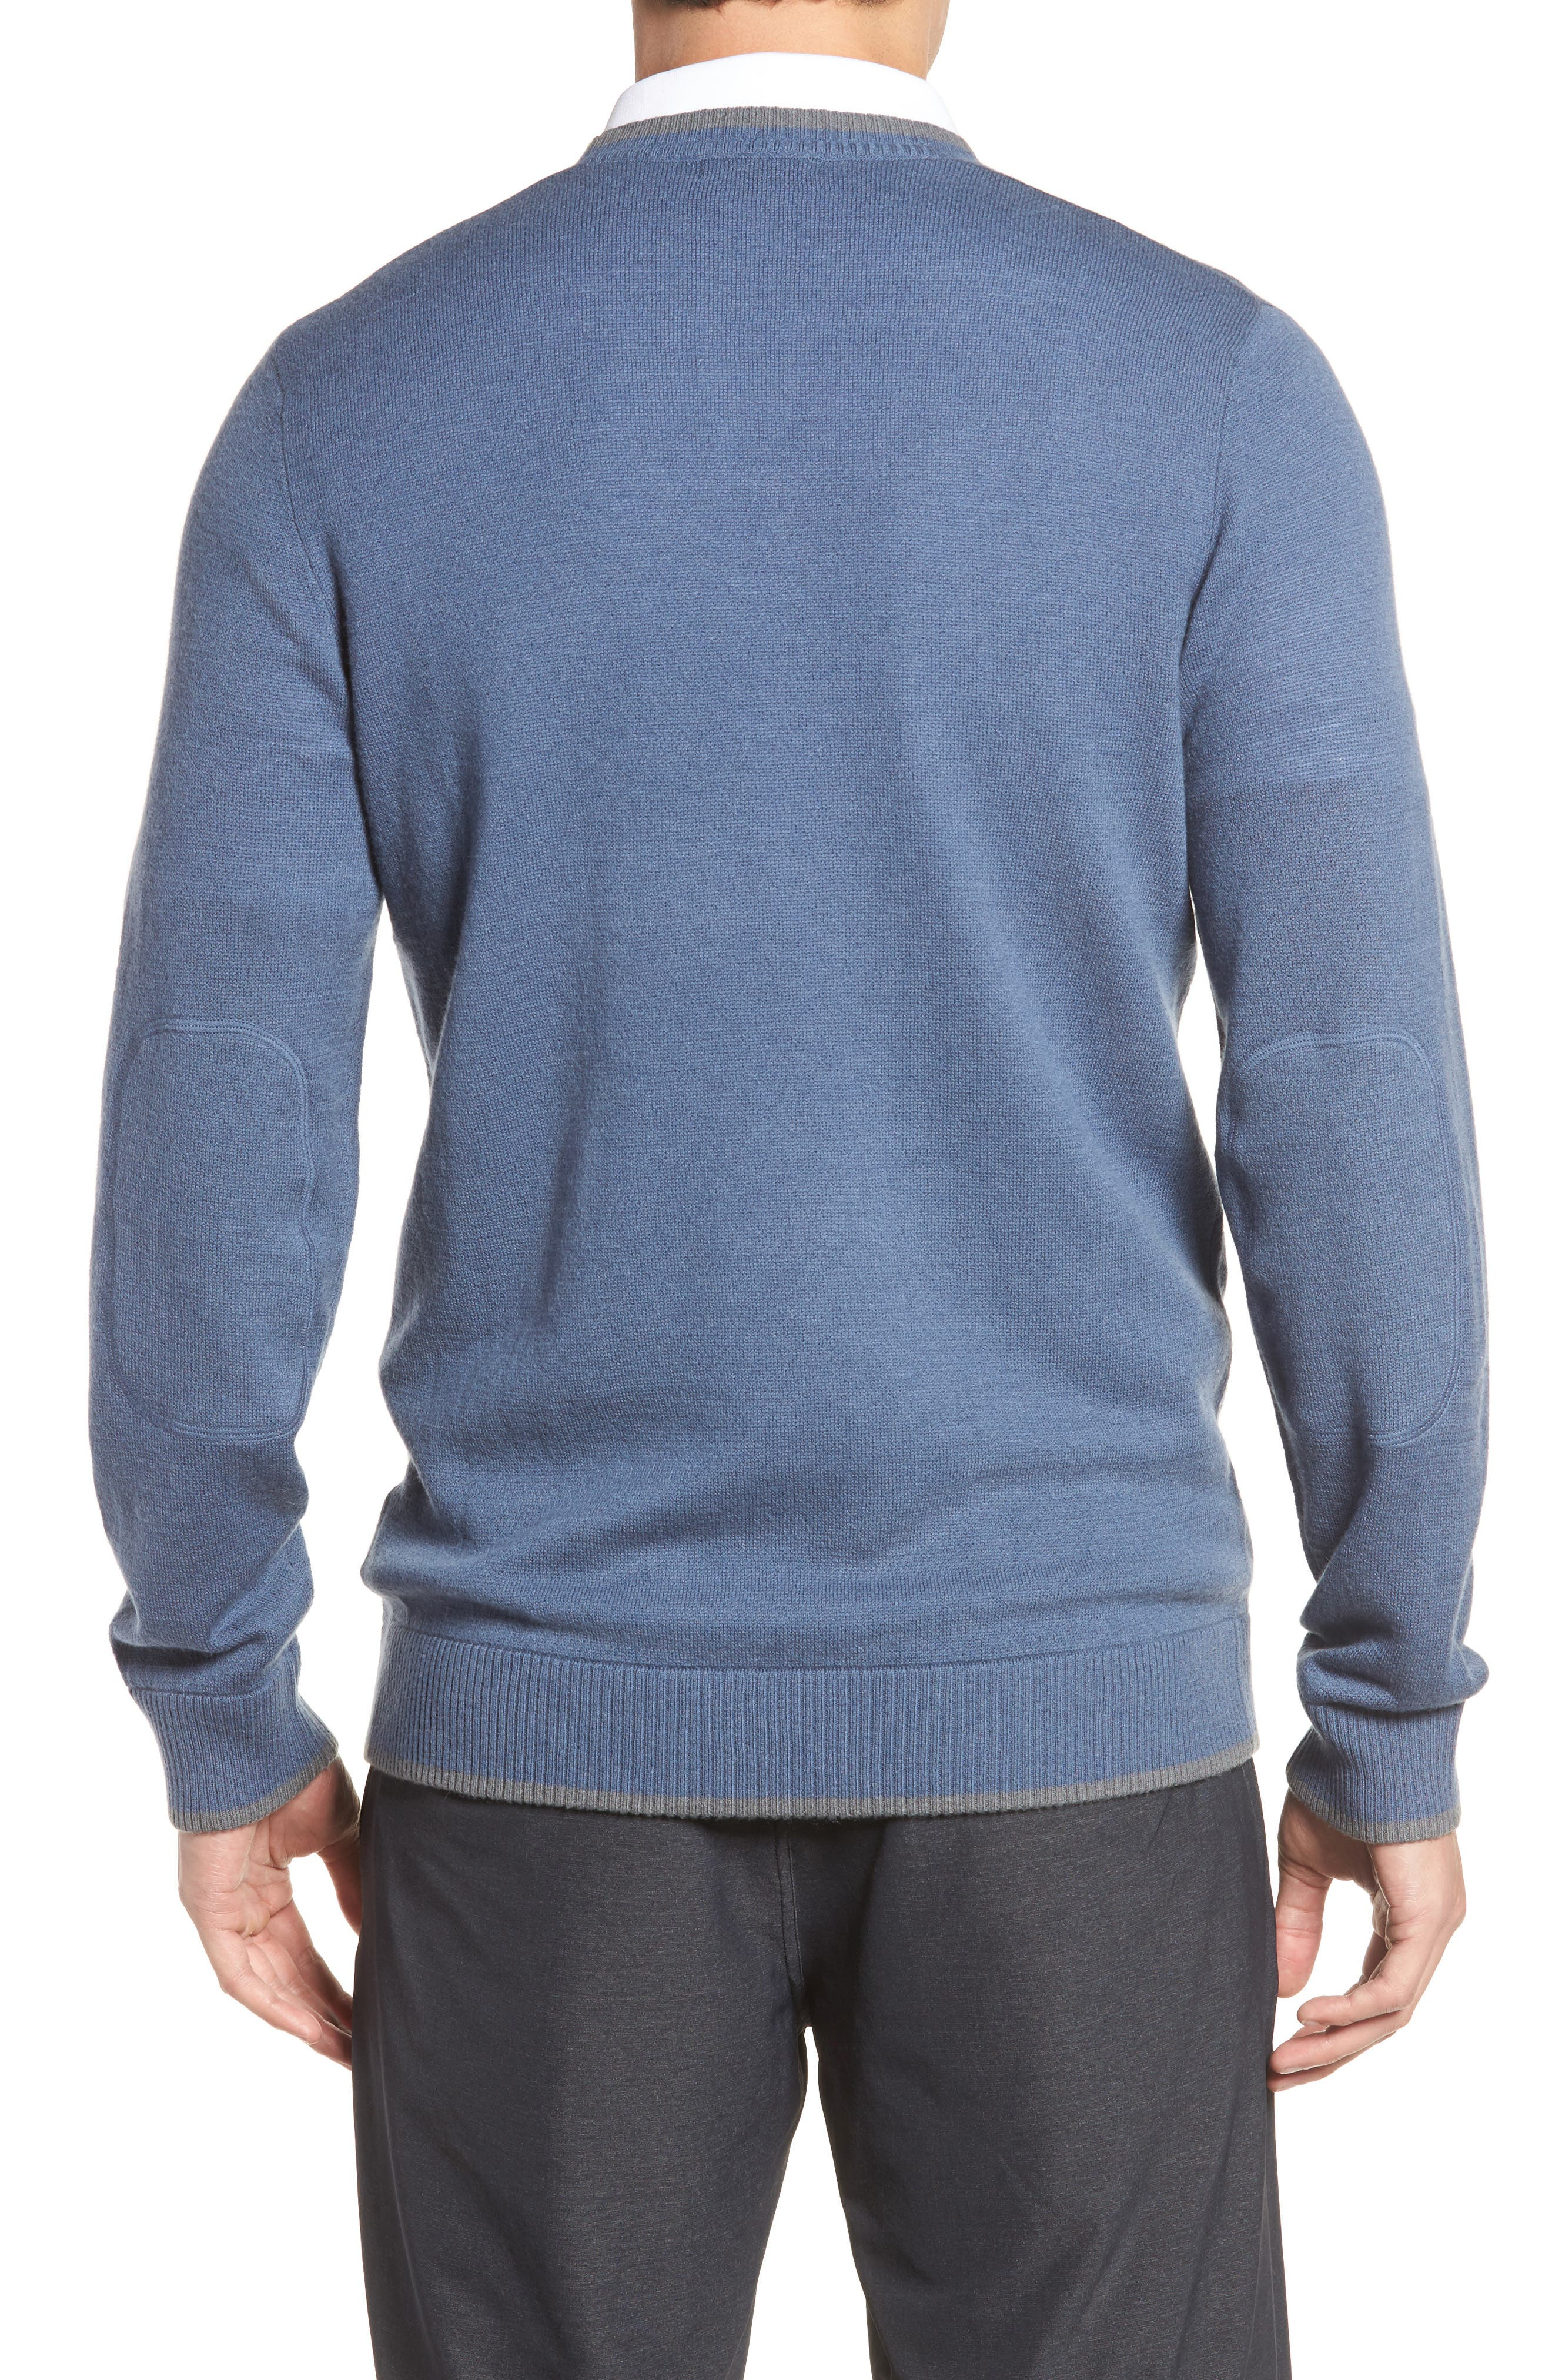 Paglia Wool Blend Sweater,                             Alternate thumbnail 2, color,                             400